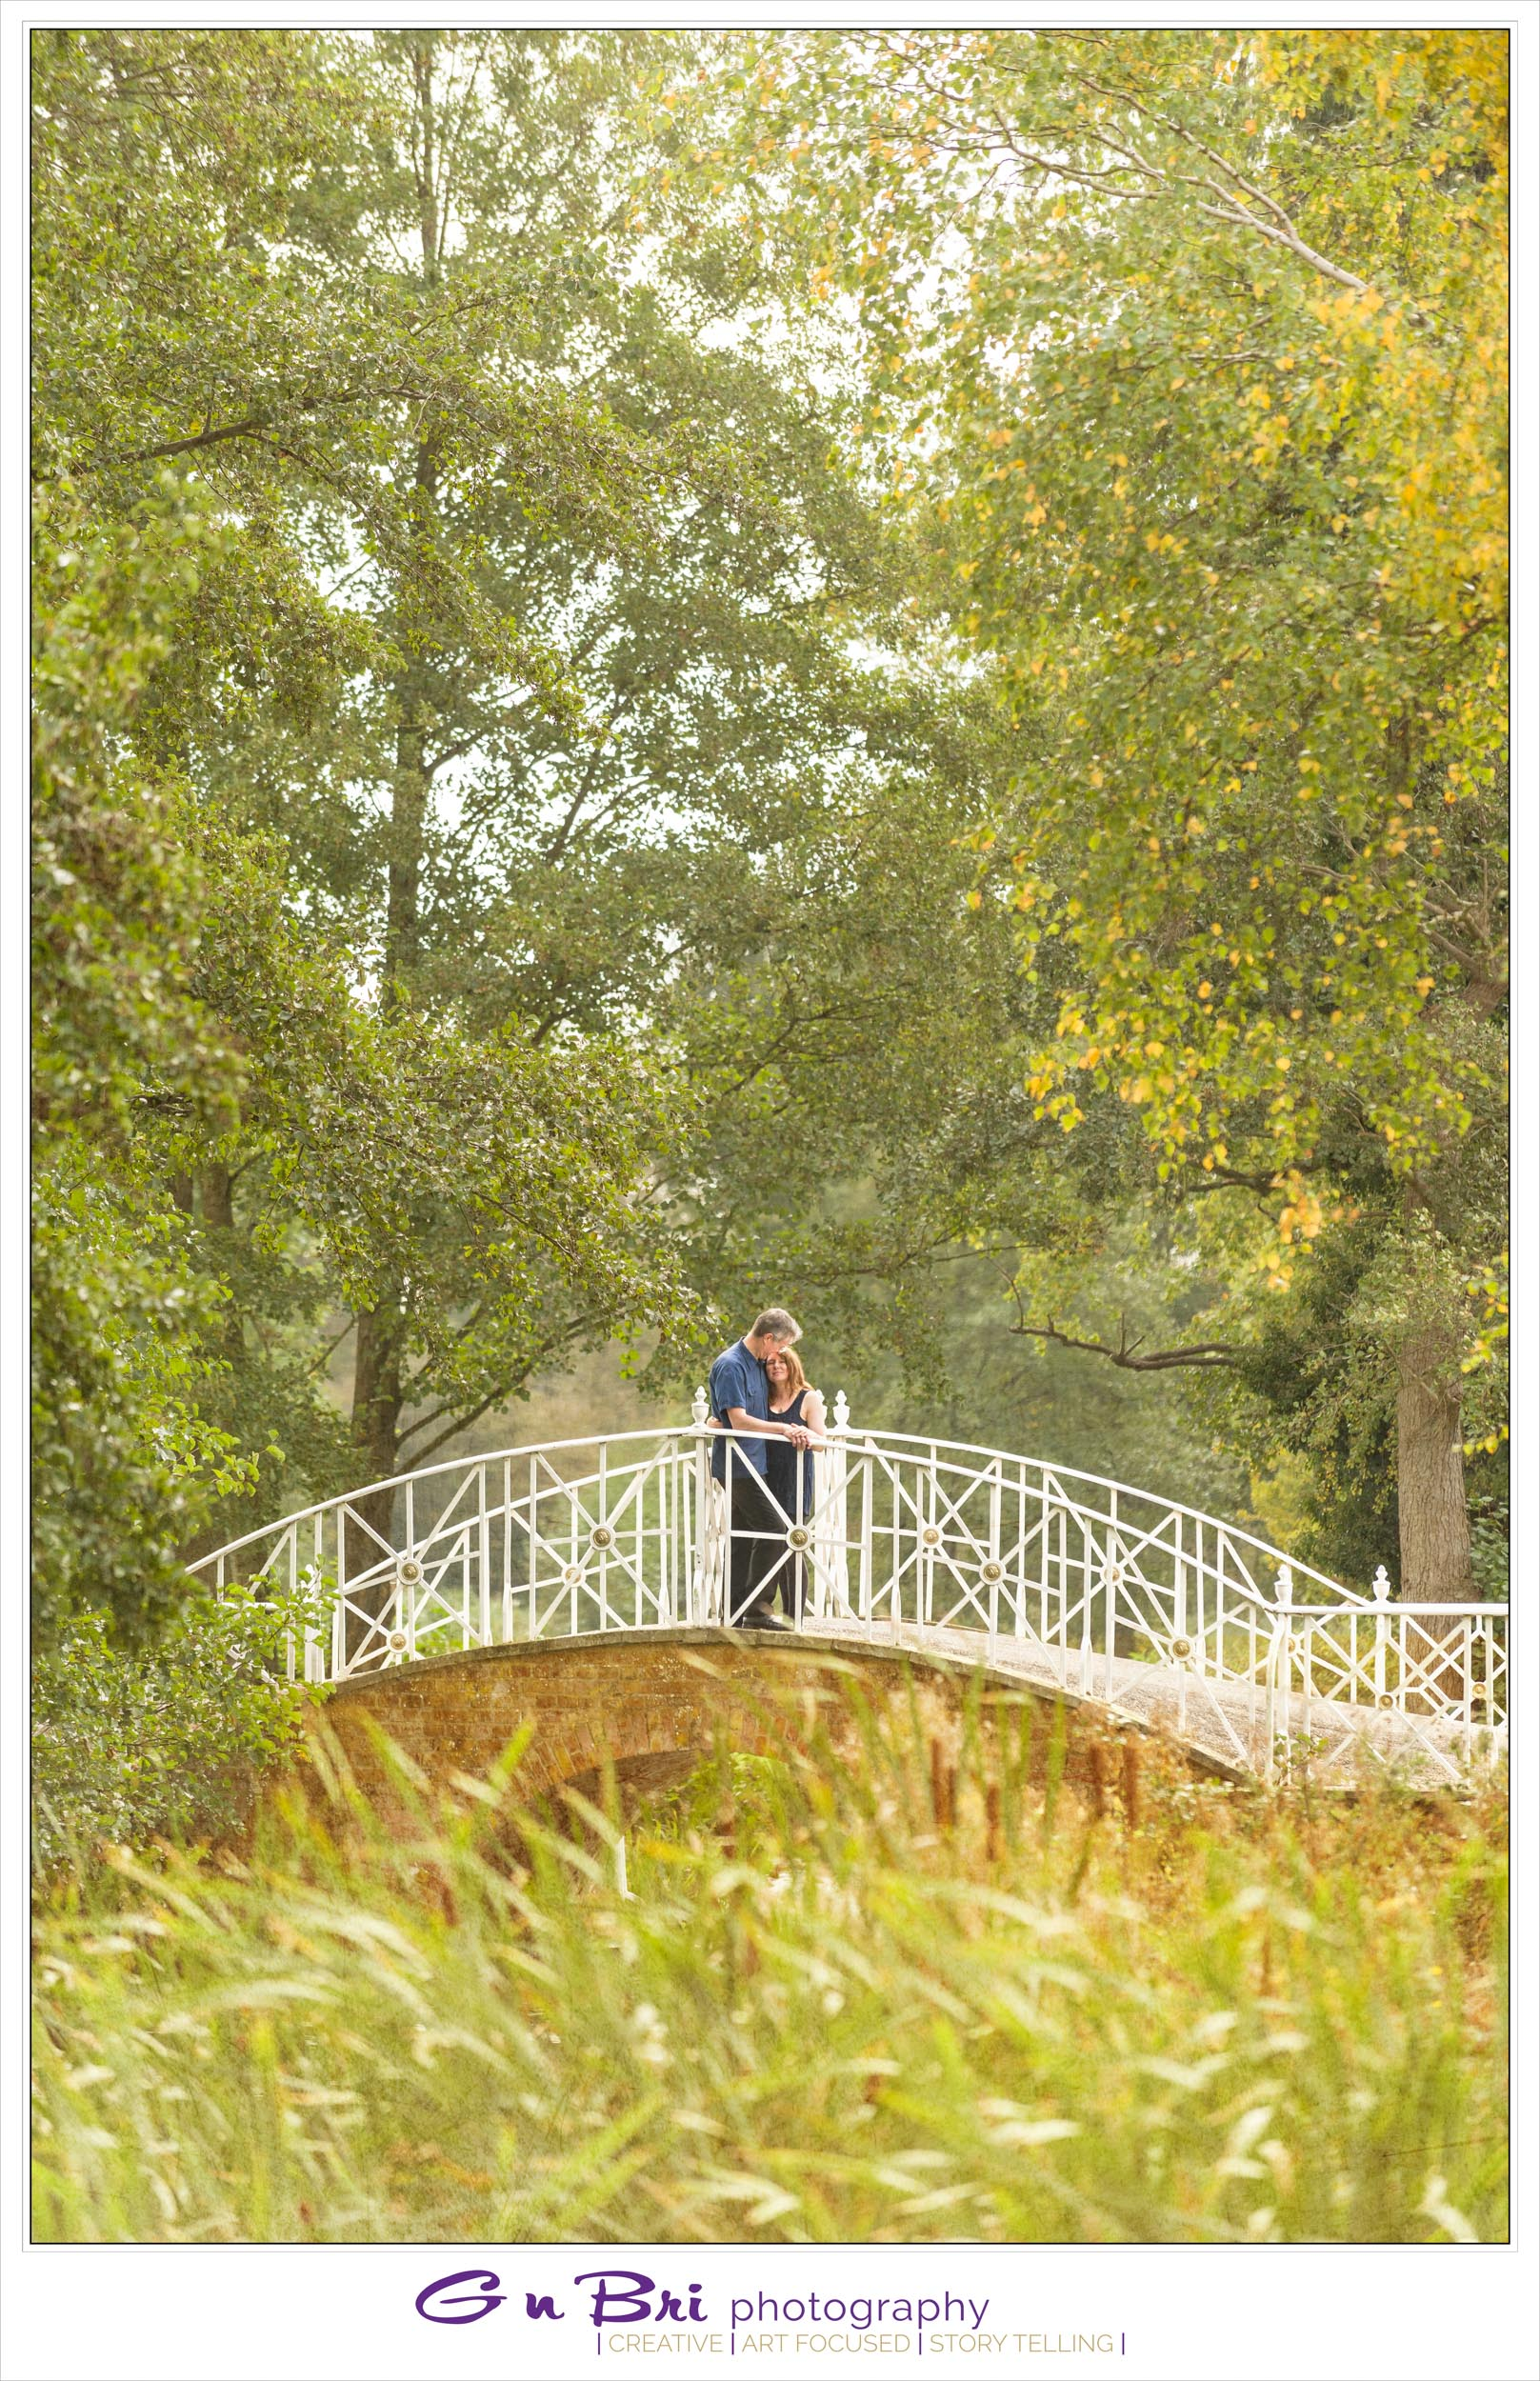 Pre-Wedding session at Marks Hall Gardens and Arboretum, Essex